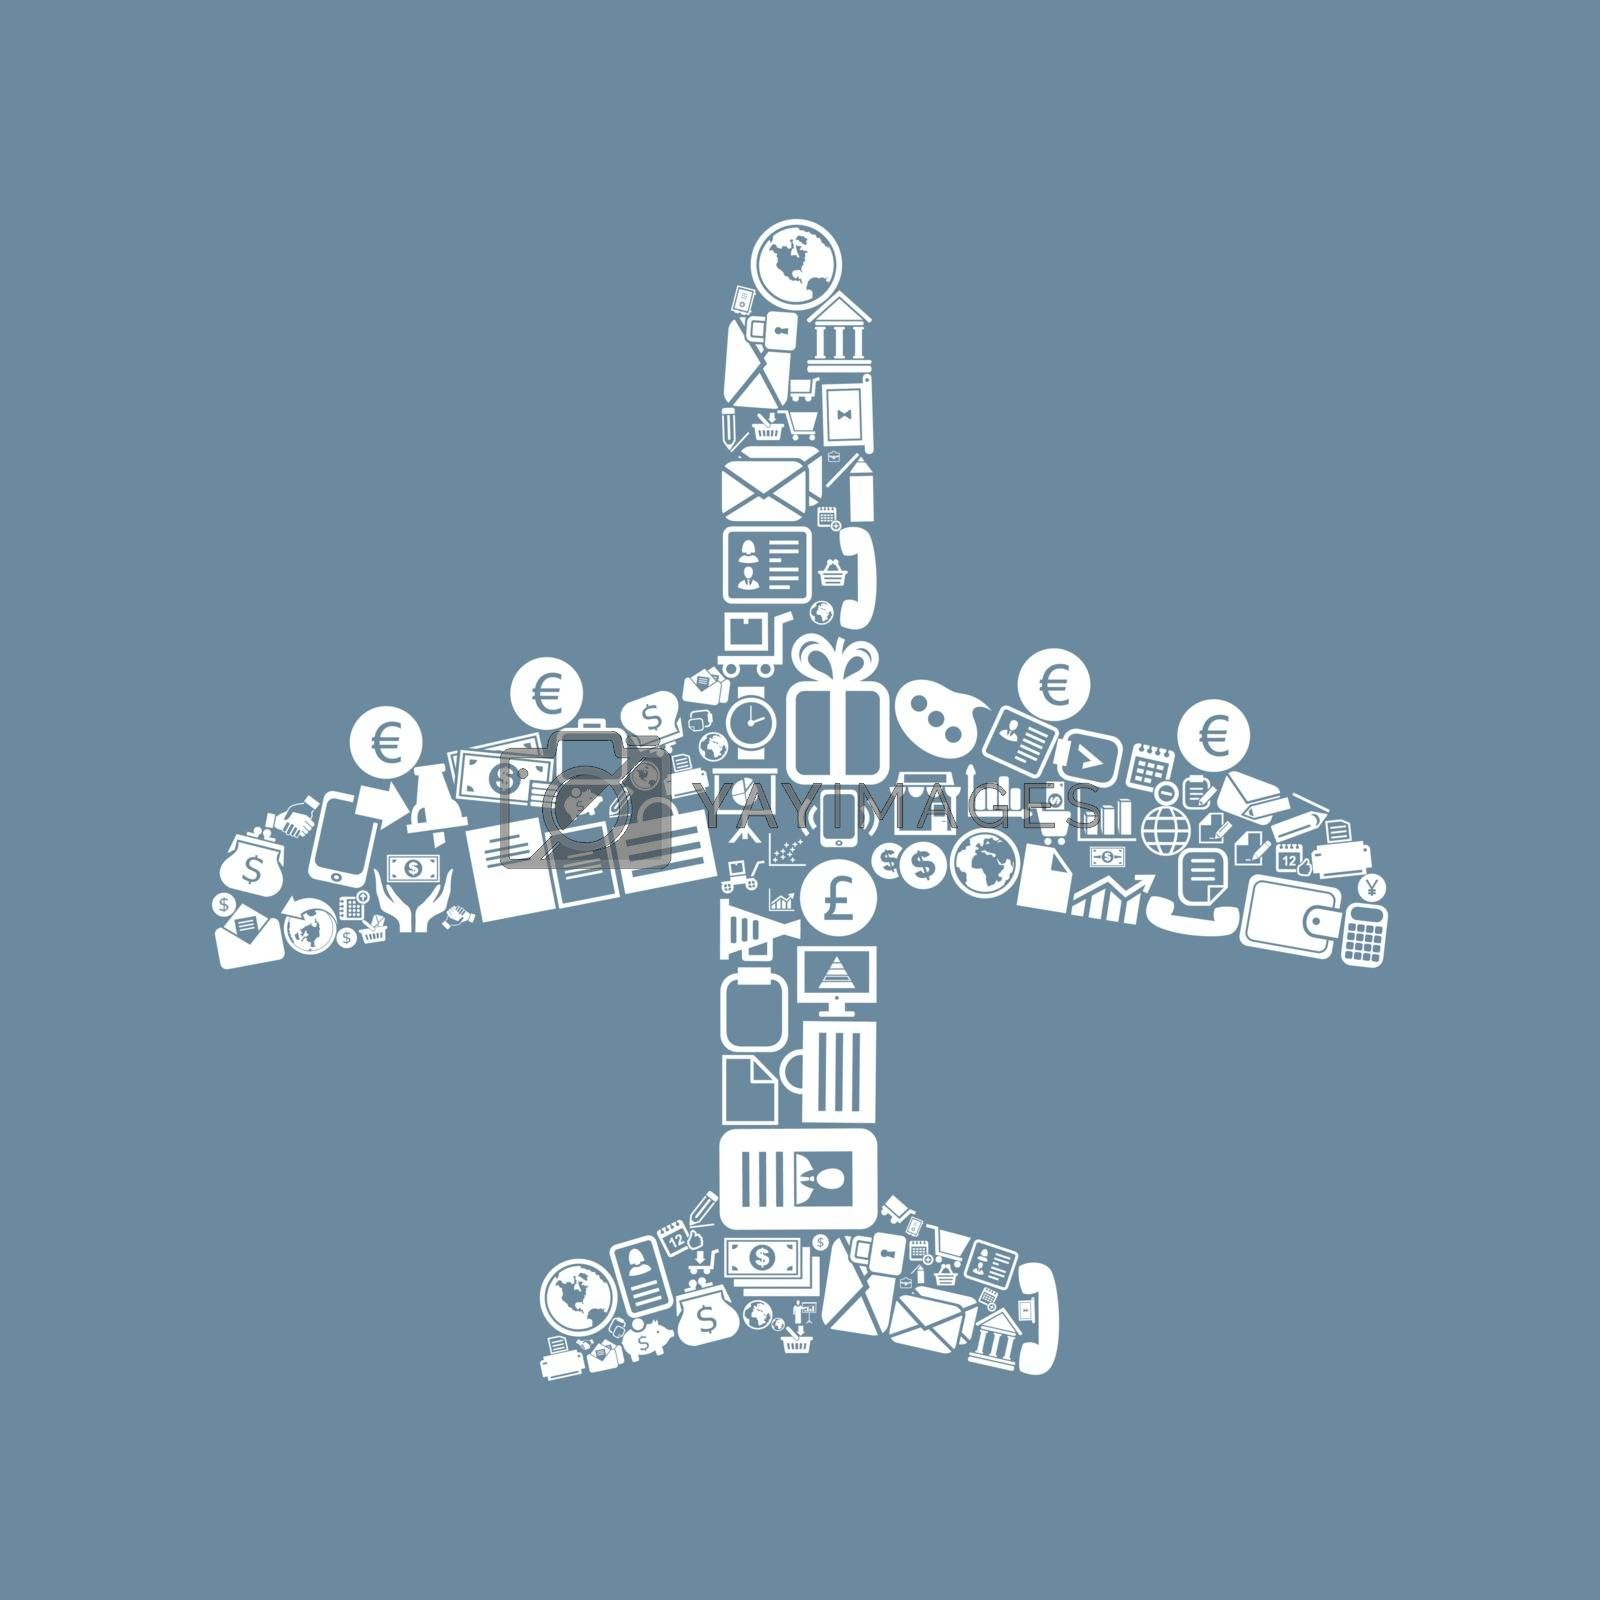 The plane made of business. A vector illustration